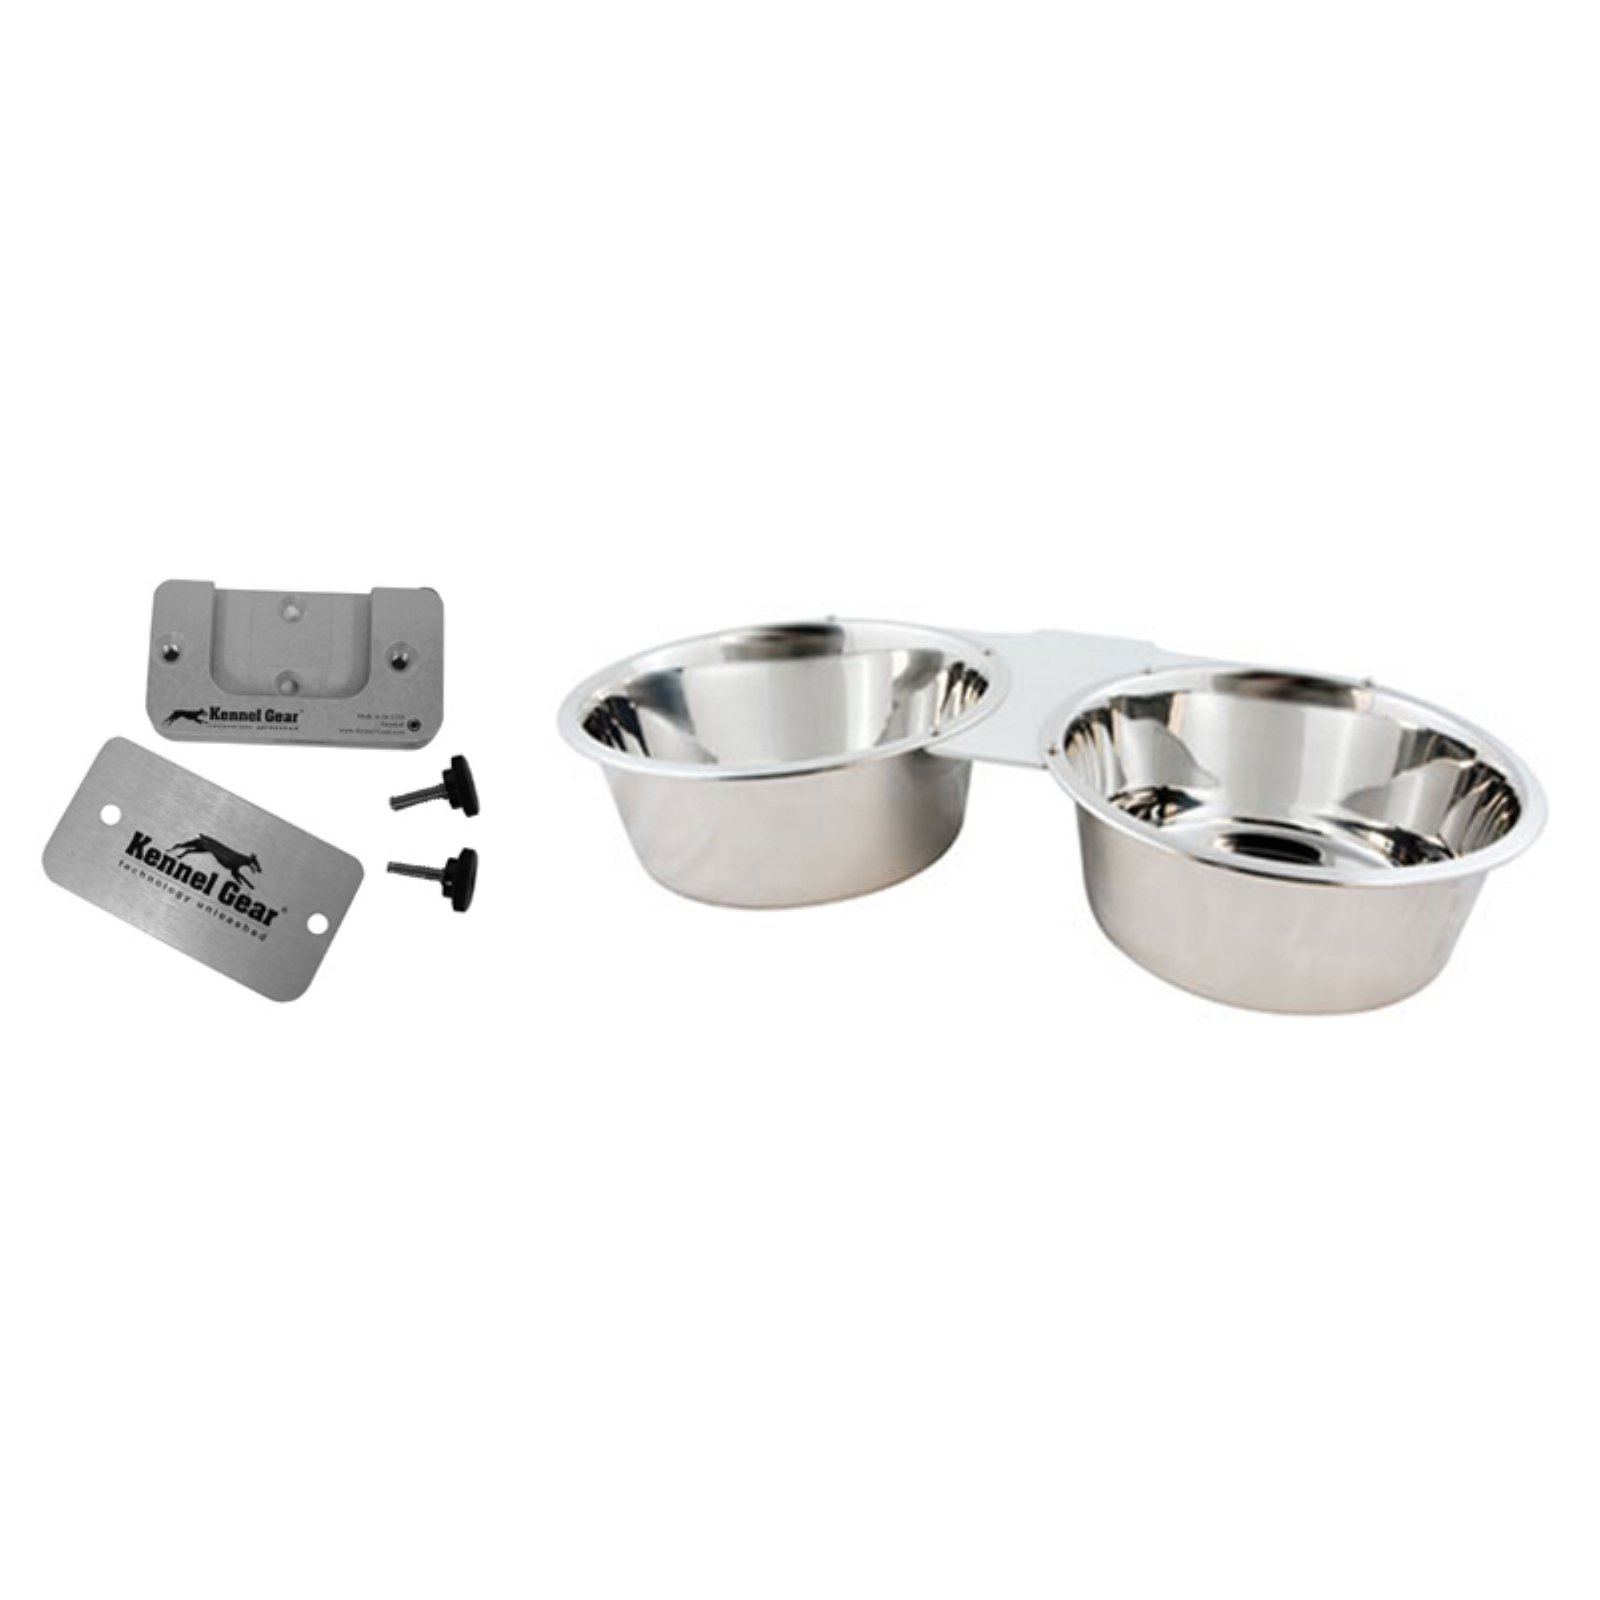 Kennel Gear Double Bowl System